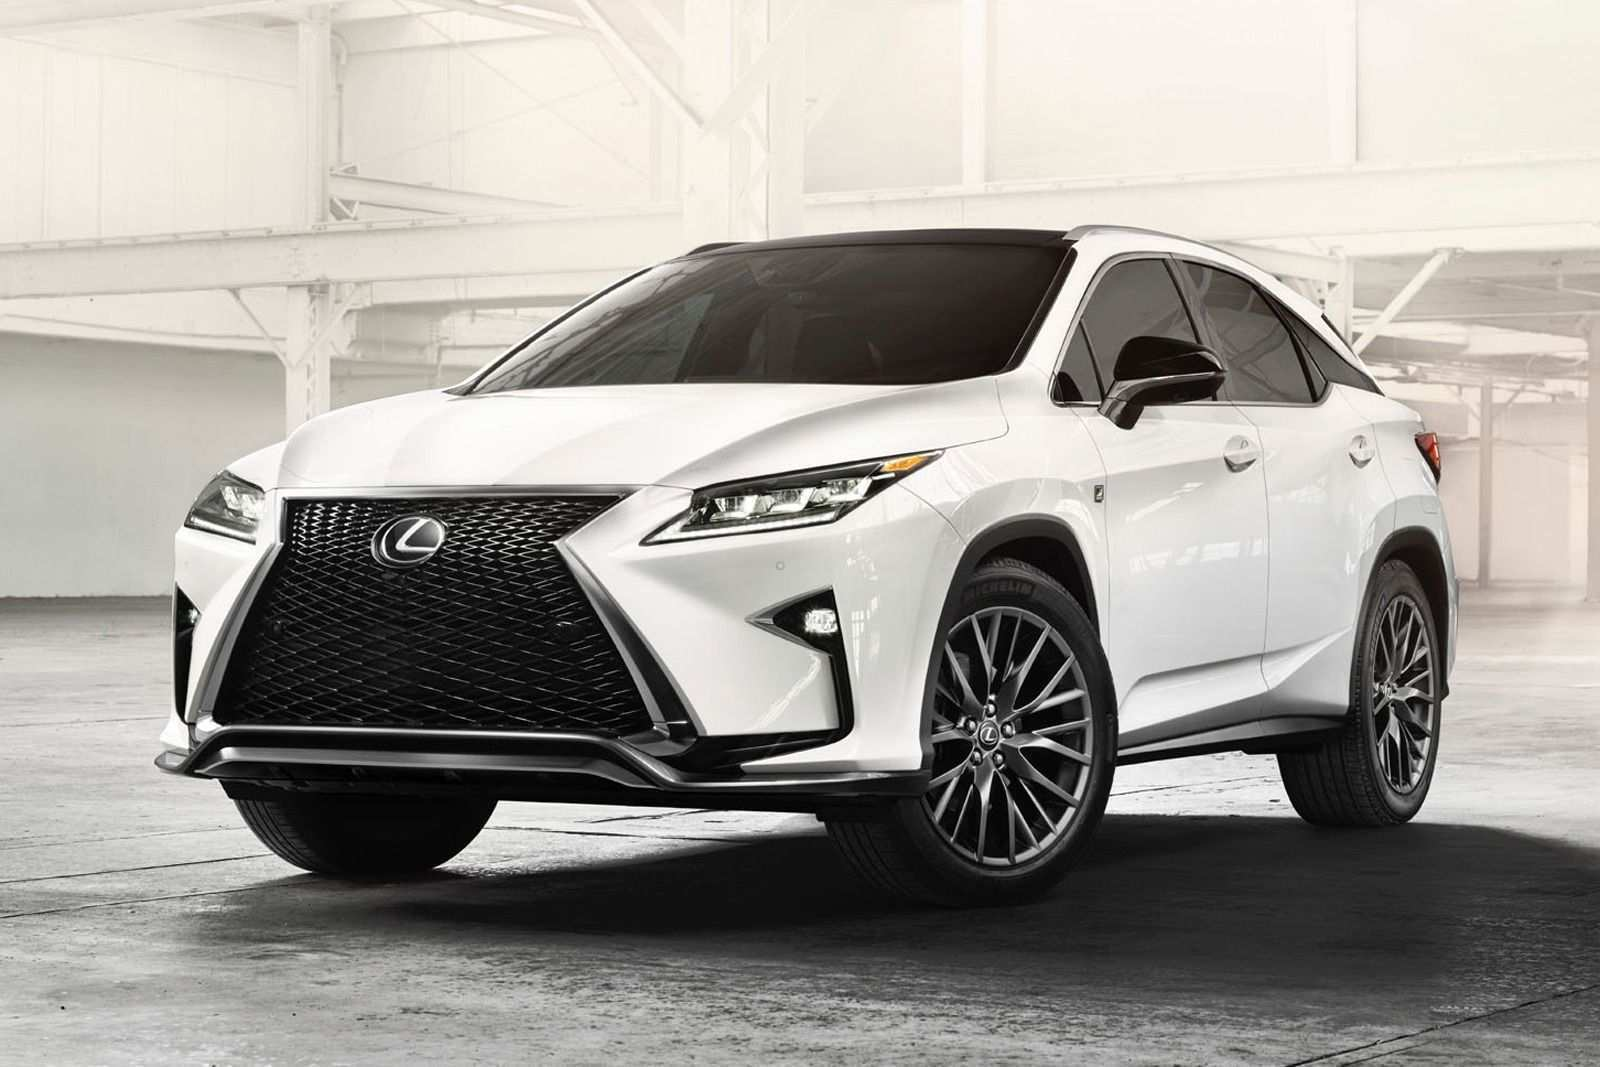 49 All New 2020 Lexus RX 350 New Review for 2020 Lexus RX 350